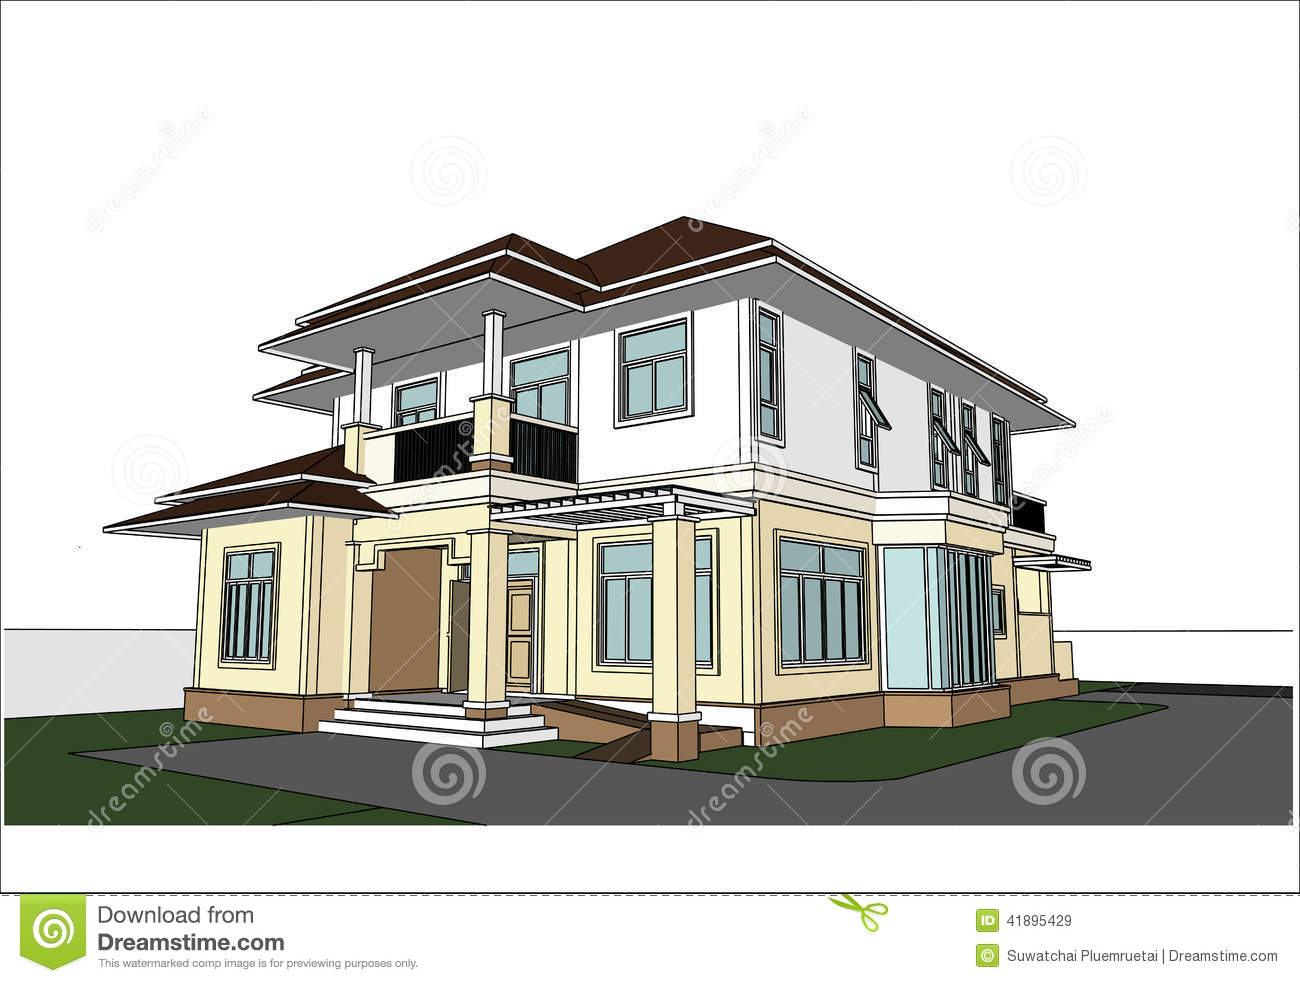 Sketch Design Of House,vector Stock Vector - Illustration of ... on house study design, house construction, product page design, house autocad, house drawing, green building design, house studio design, house design blueprint, sketchup house design, house graphic design, house green design, house perspective design, house template, house architecture design, house model design, house plans with furniture layouts, house painting design, house layout design, house art design, house light design,